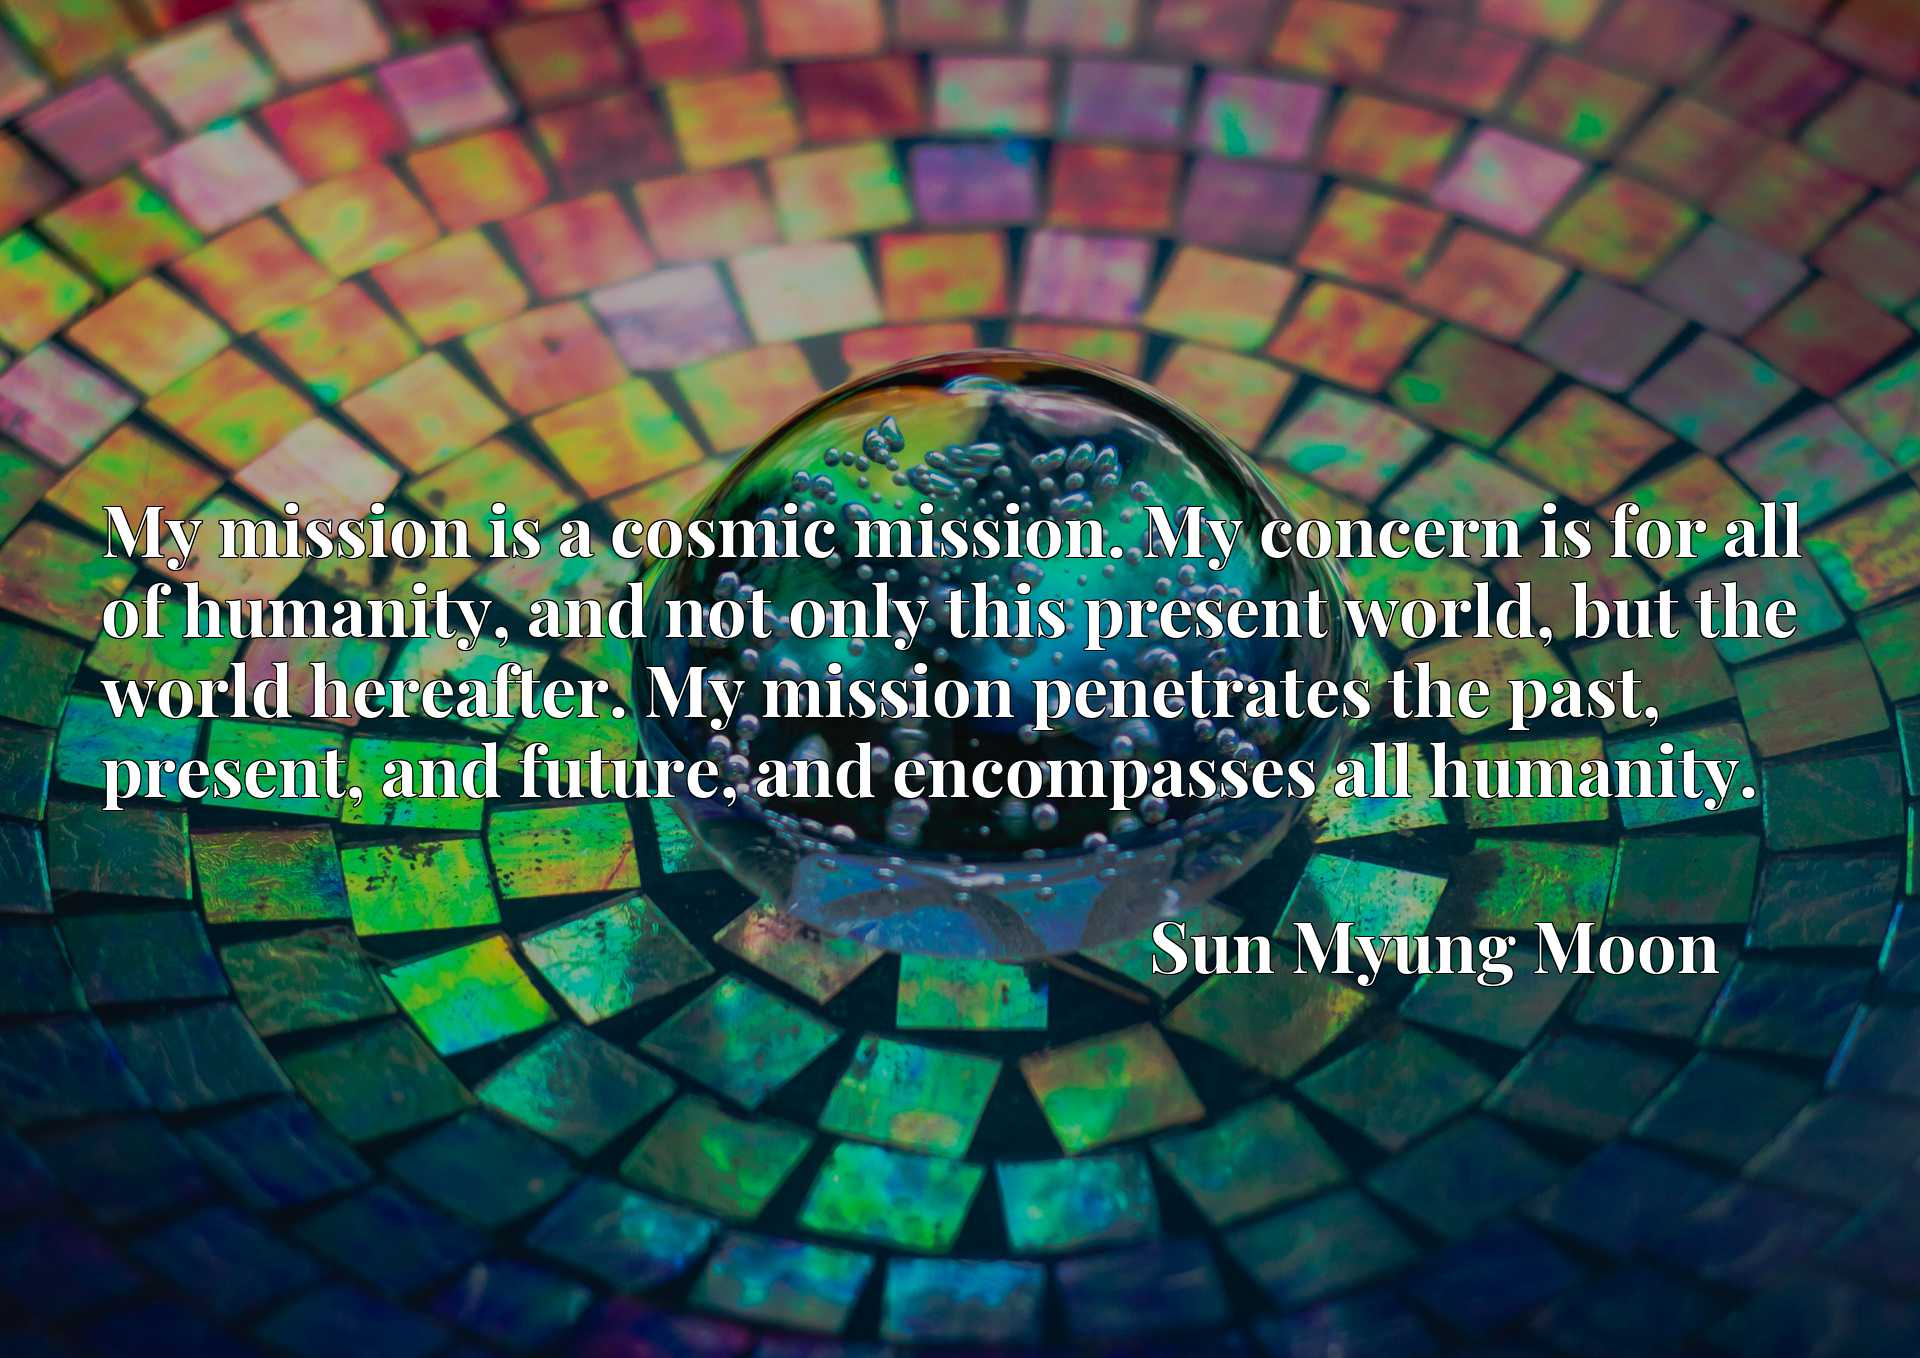 My mission is a cosmic mission. My concern is for all of humanity, and not only this present world, but the world hereafter. My mission penetrates the past, present, and future, and encompasses all humanity.